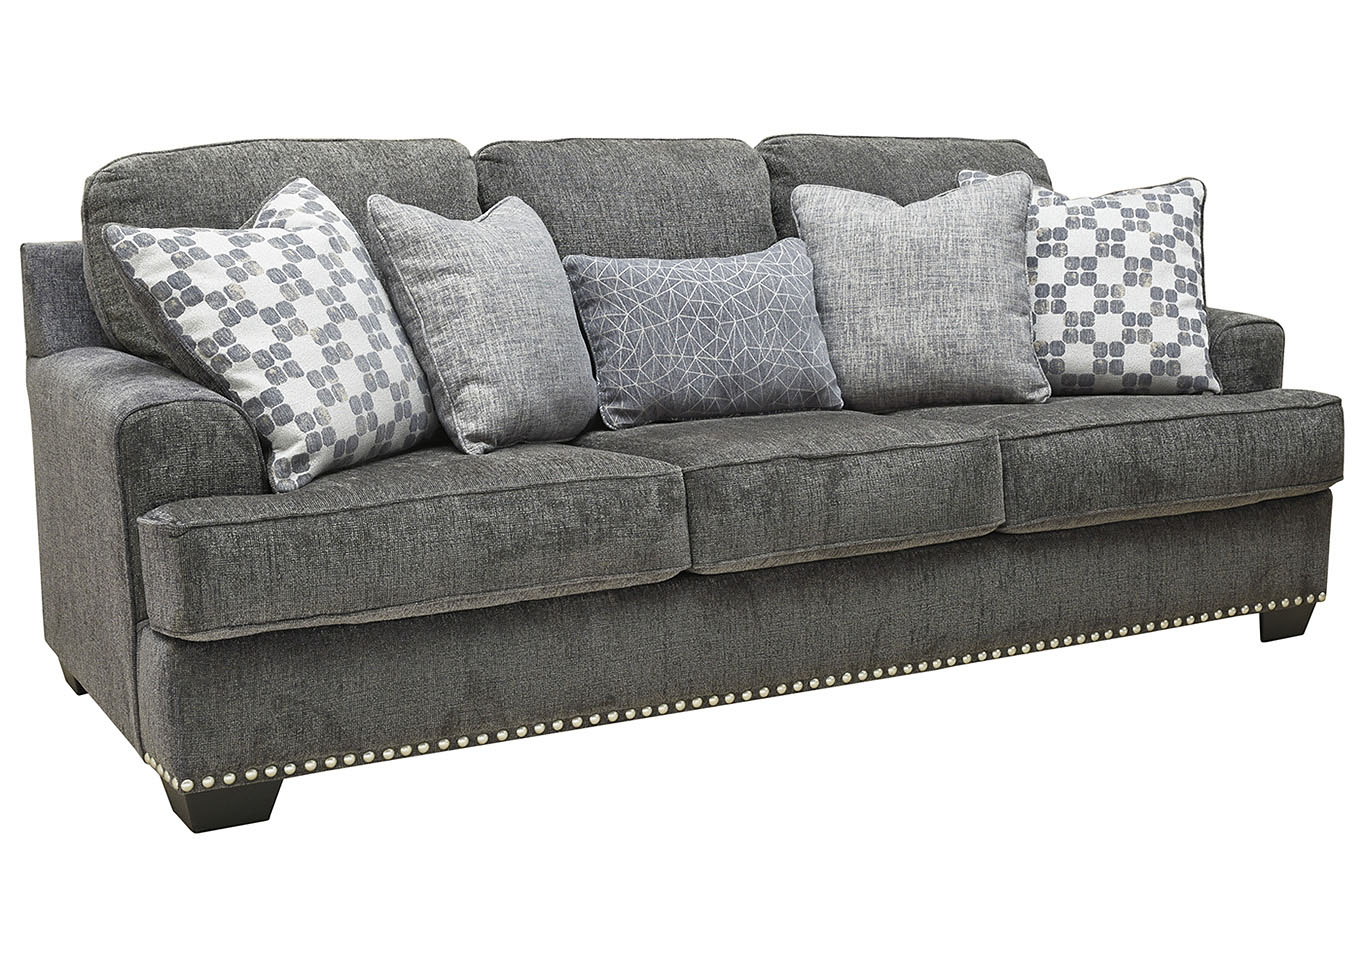 Locklin Carbon Sofa w/5 Pillows,Signature Design By Ashley